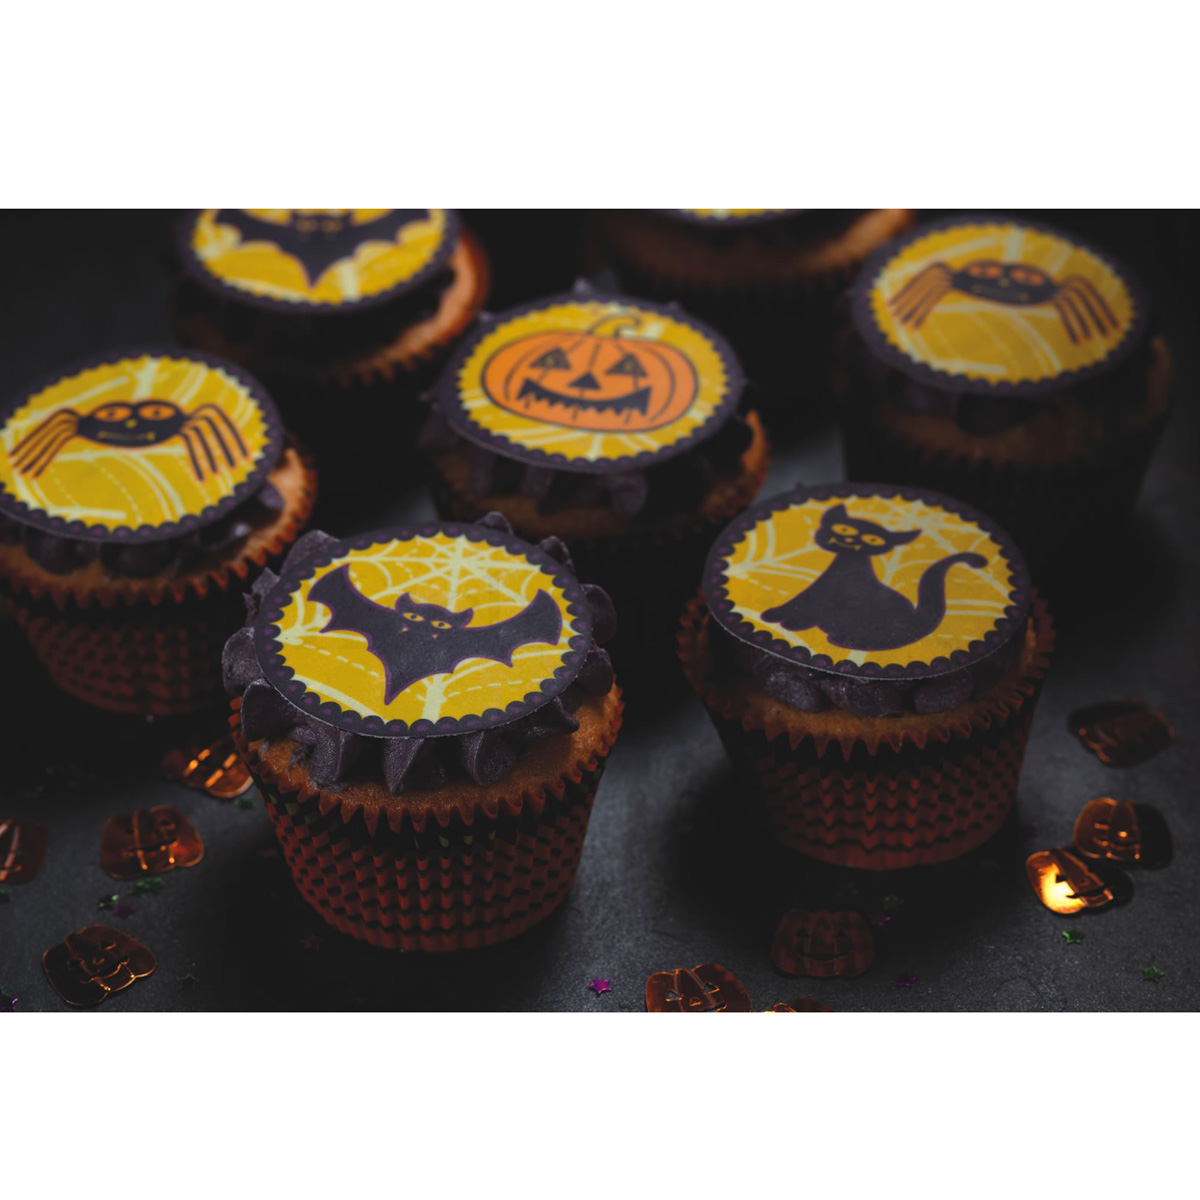 Edible Cake Decorations Halloween : Halloween Edible 12 Pack Cake Toppers Unique Home Living